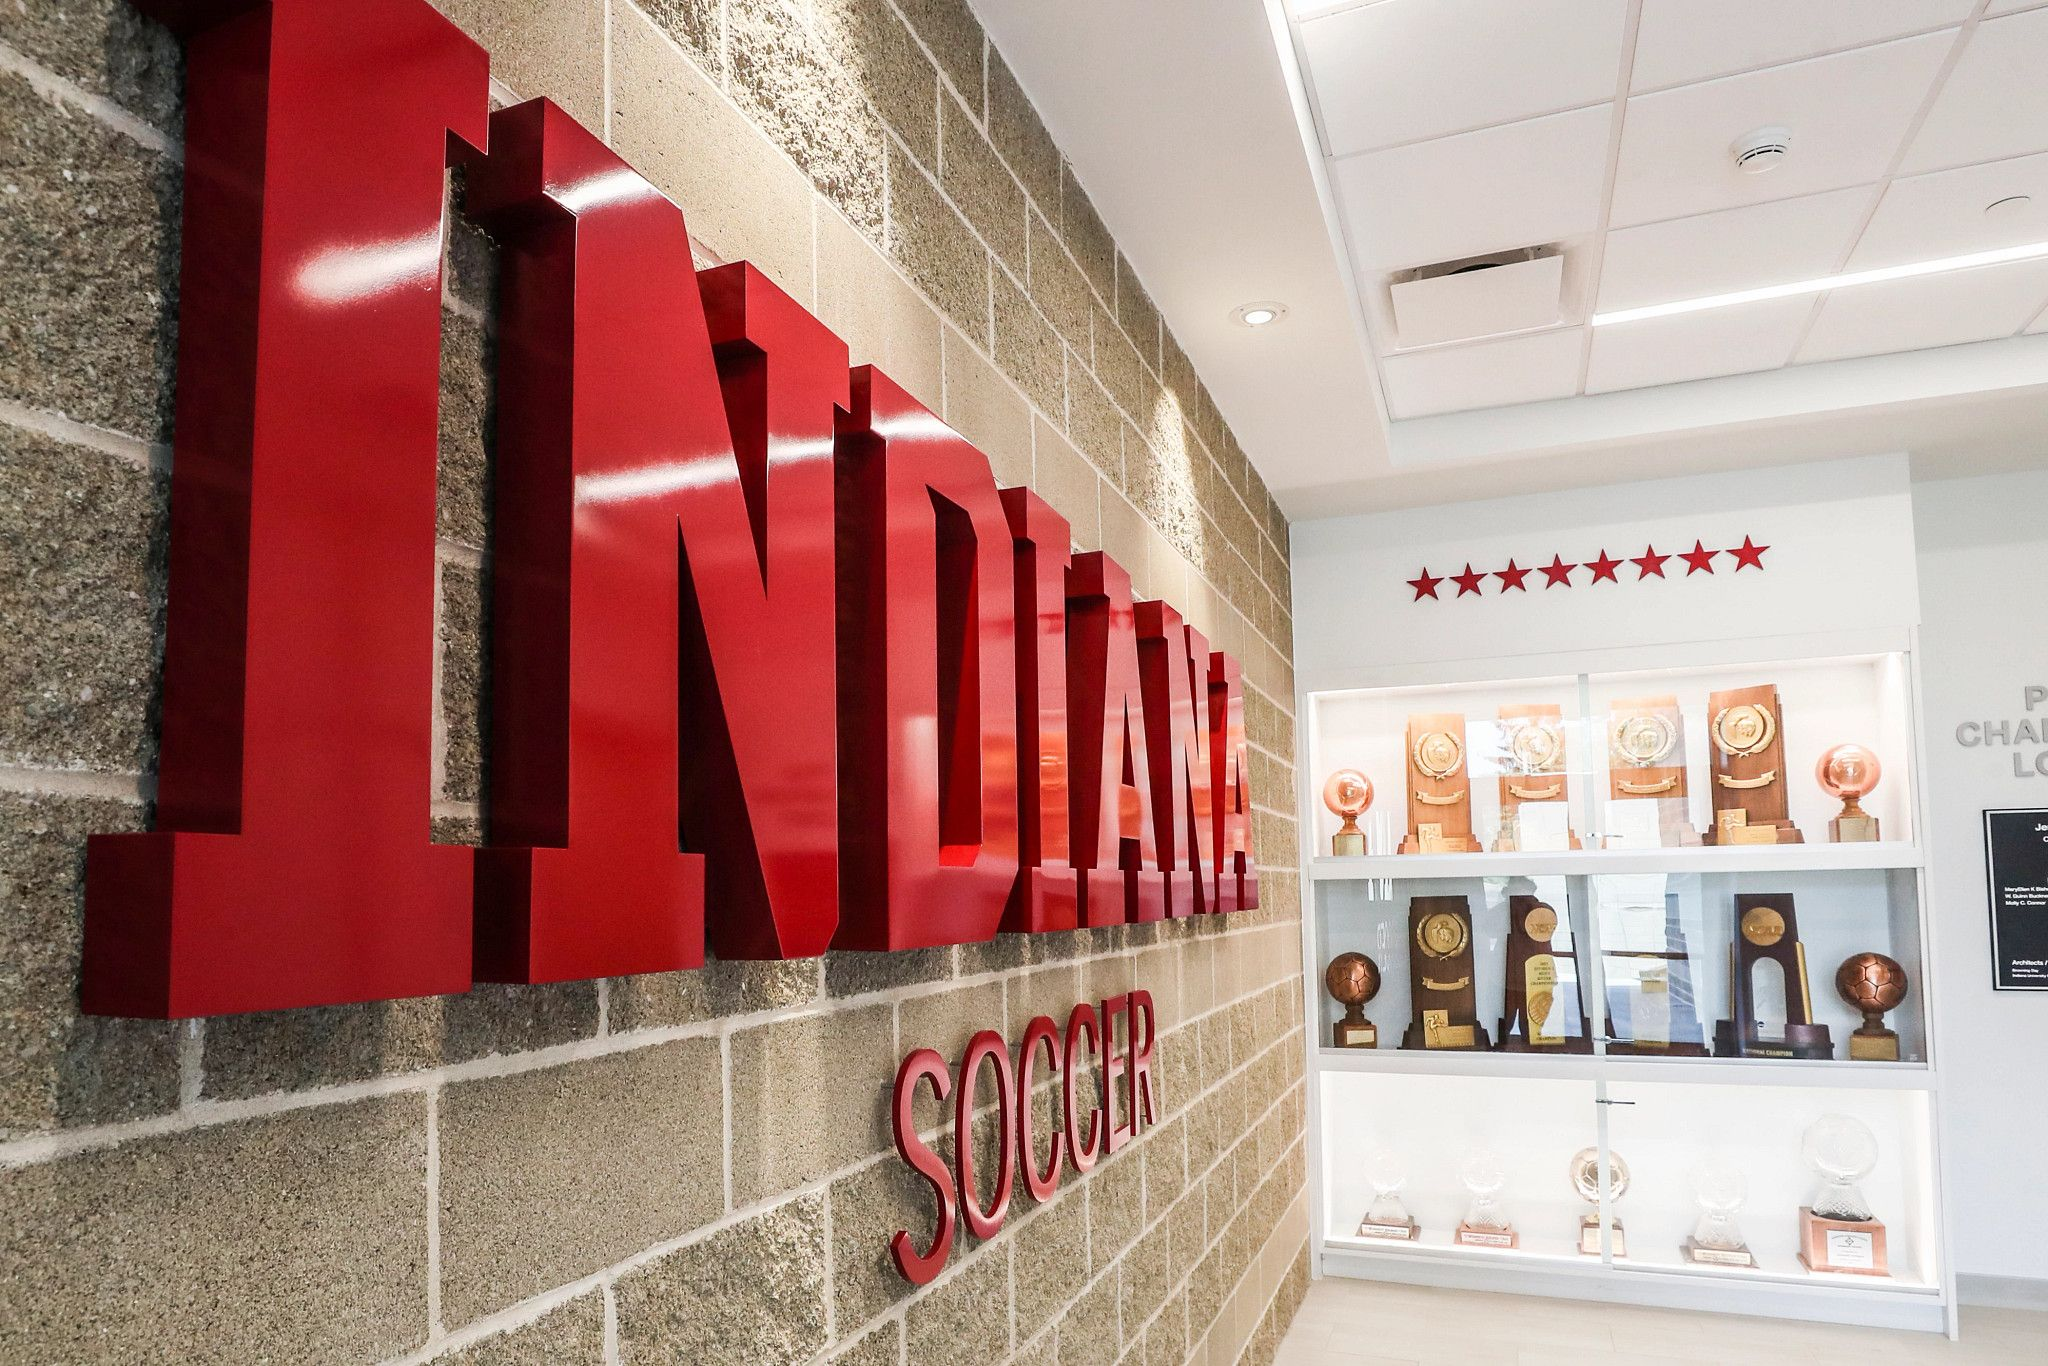 Red letters spelling Indiana soccer hang on a wall next to a trophy case.